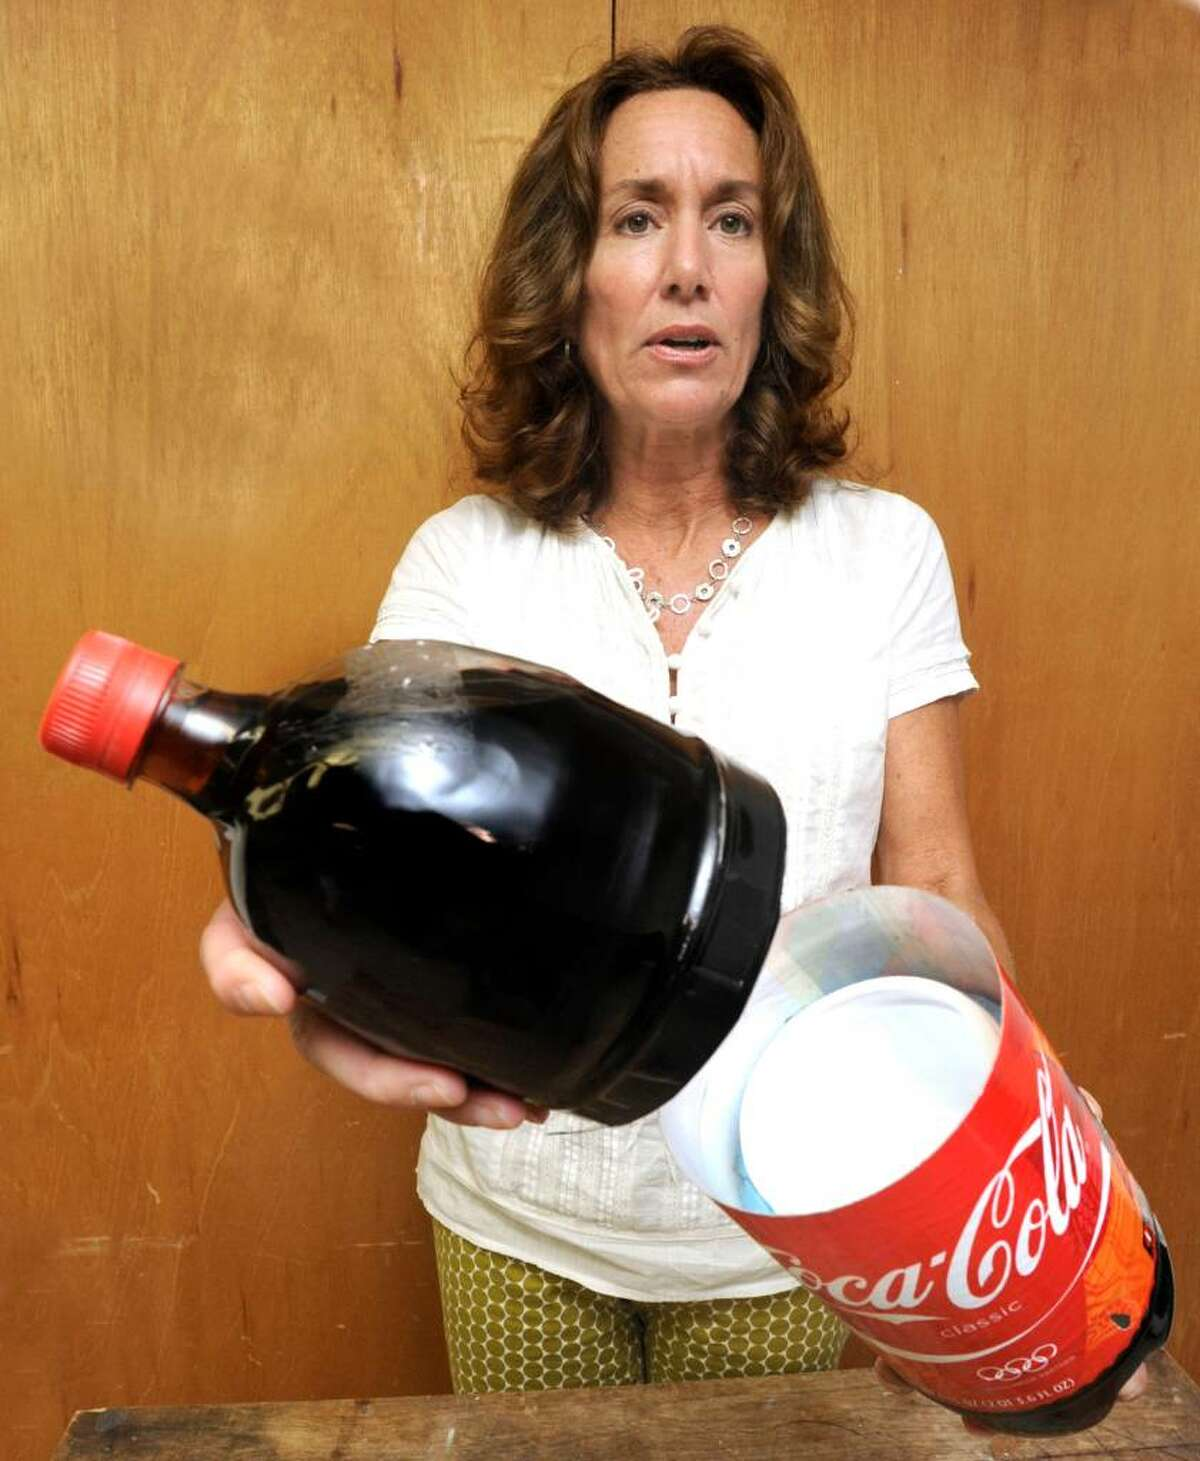 Allison Fulton, excutive director of Housatanic Coalition Against Substances, demonstrates a Coke bottle used to hide stash, and can be purchased in the mall, on friday.